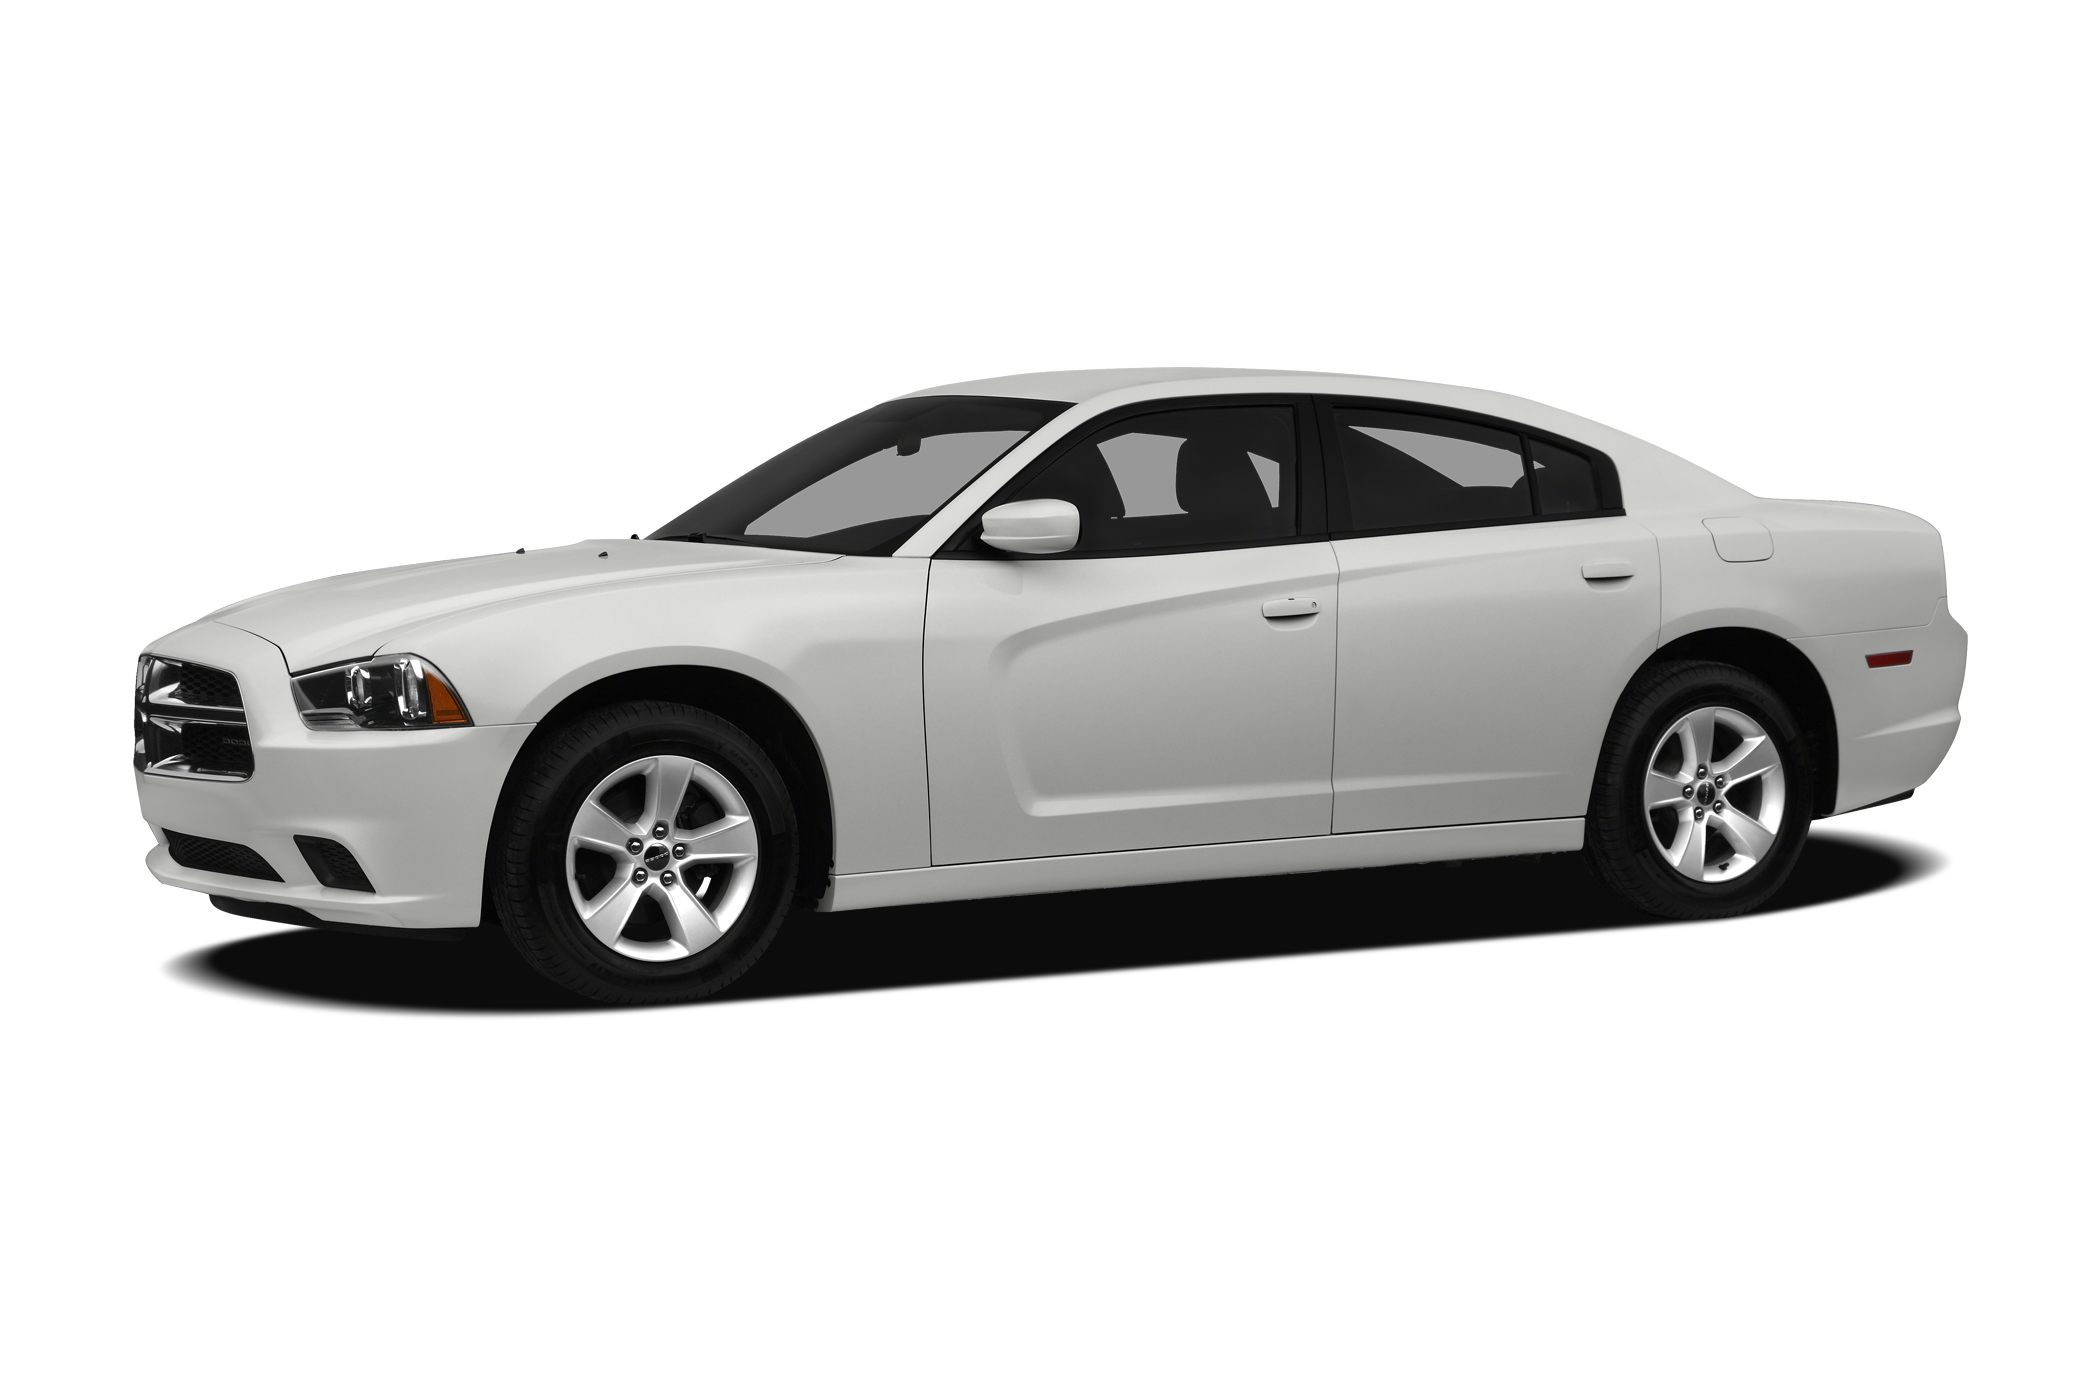 2012 Dodge Charger SE Sedan for sale in Charlotte for $18,739 with 74,003 miles